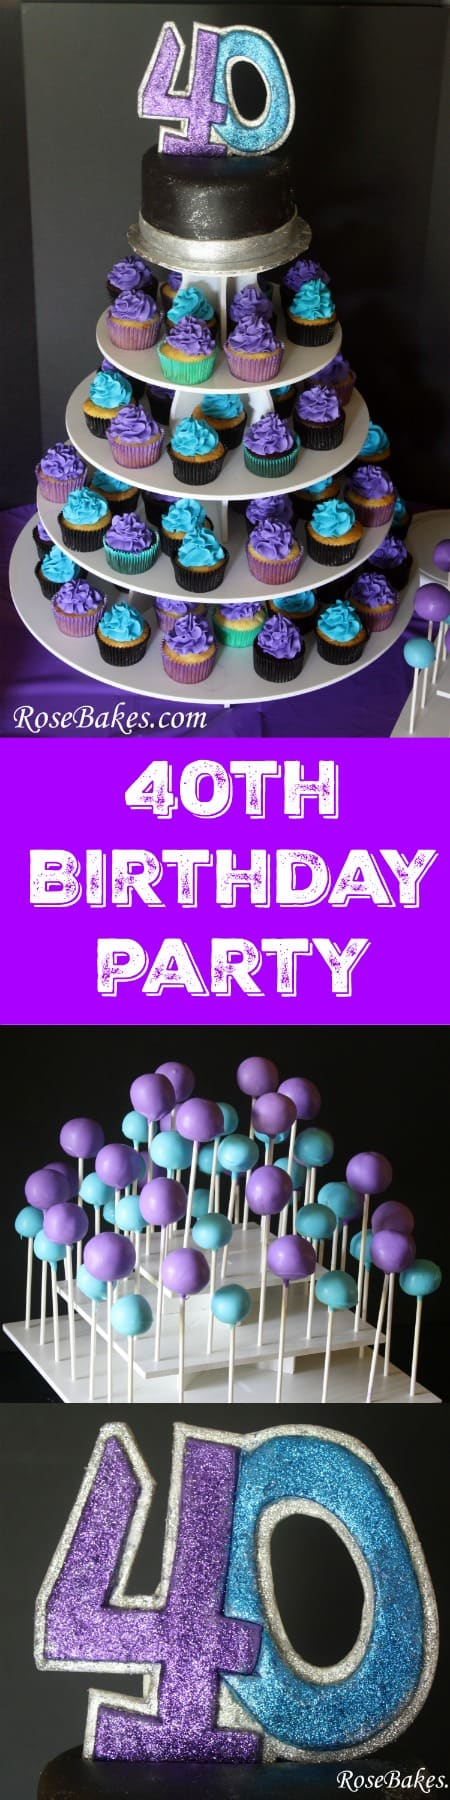 40th Birthday Party Ideas Cake Pops Cupcakes Decor Black Purple